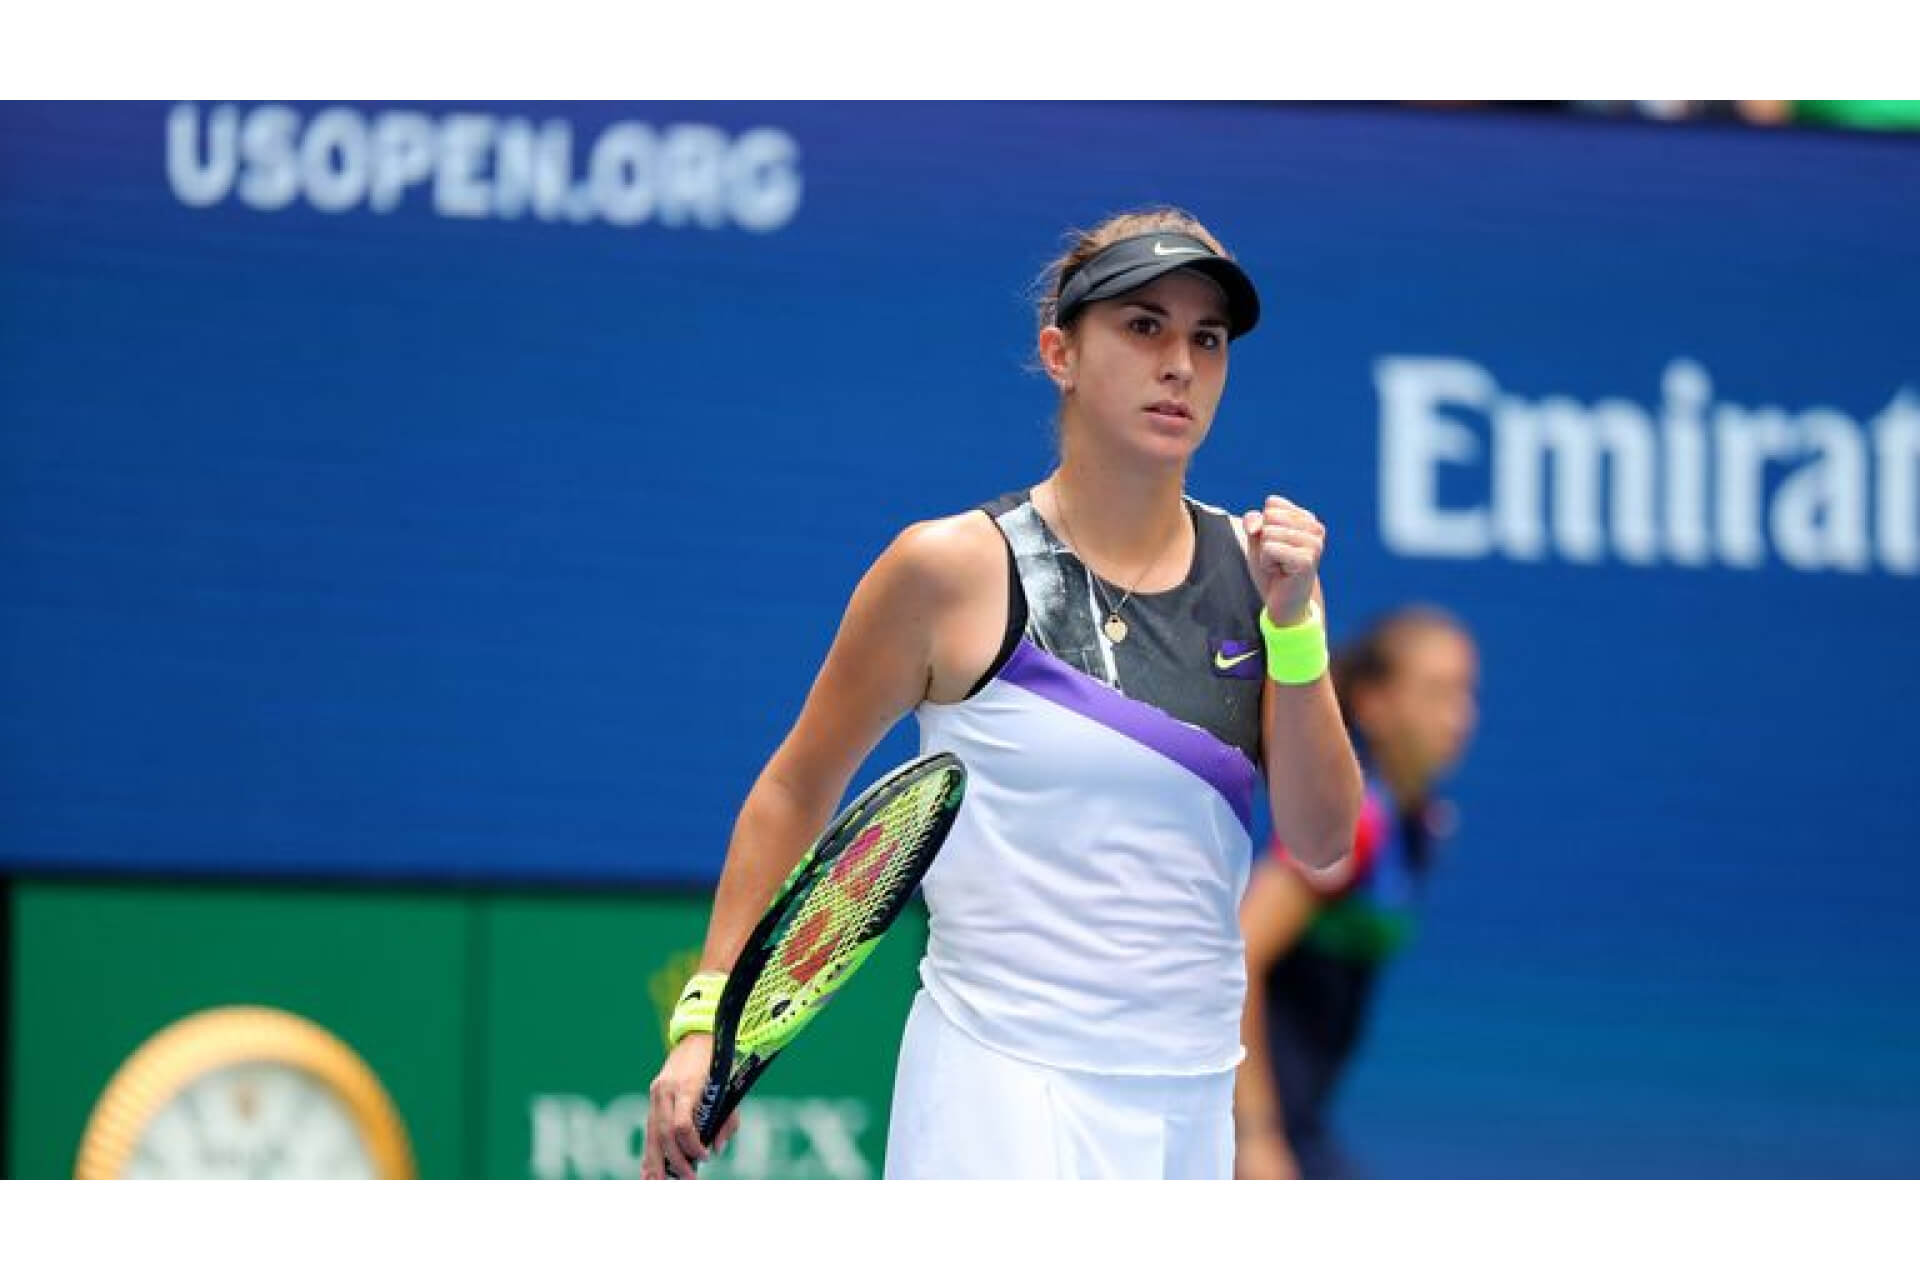 Belinda Bencic also pulls out of US Open